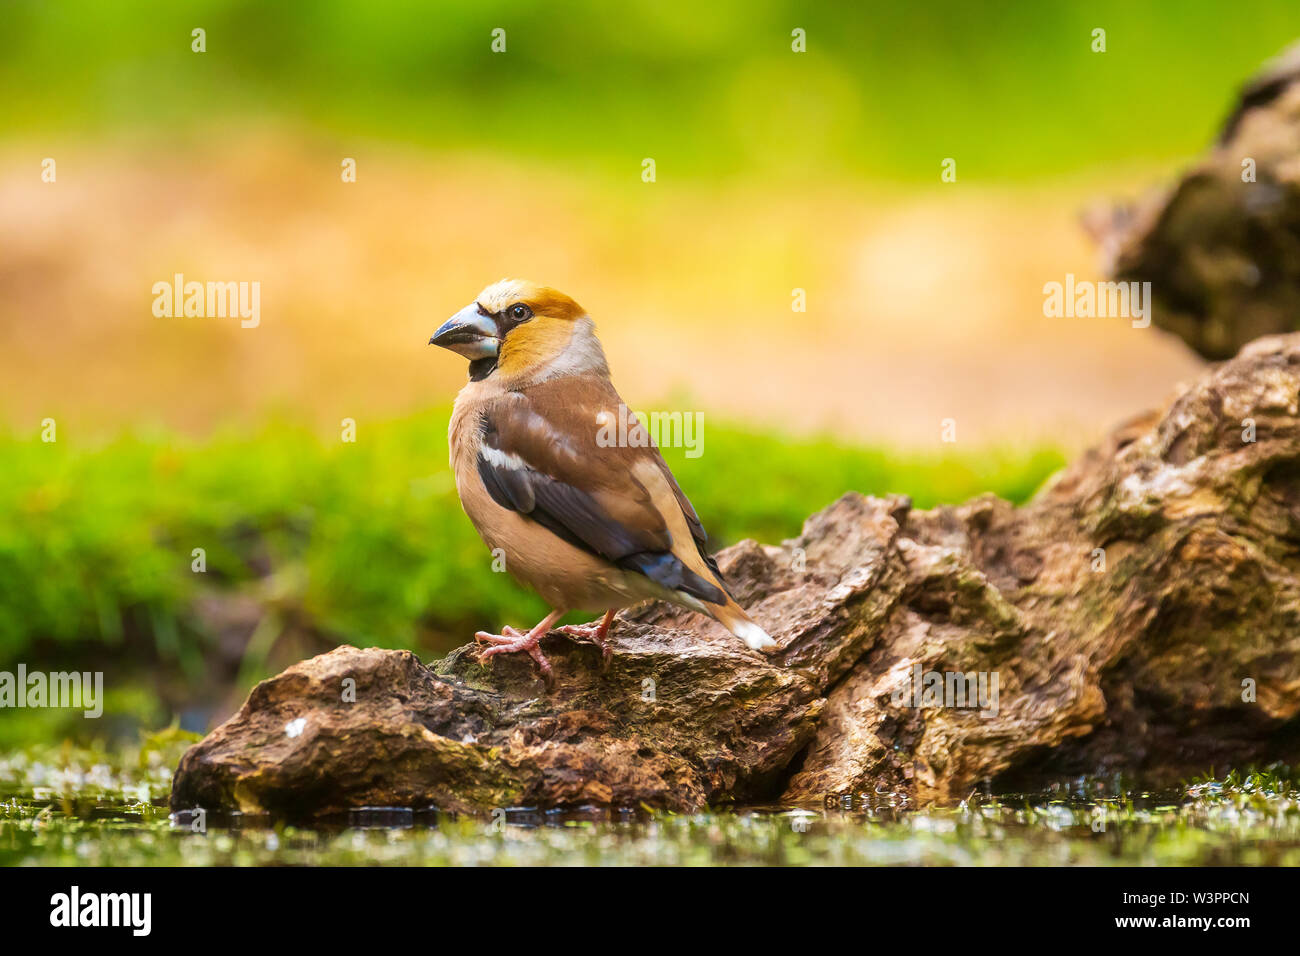 Closeup of a hawfinch male, Coccothraustes coccothraustes, bird perched on wood. Selective focus, natural daylight - Stock Image